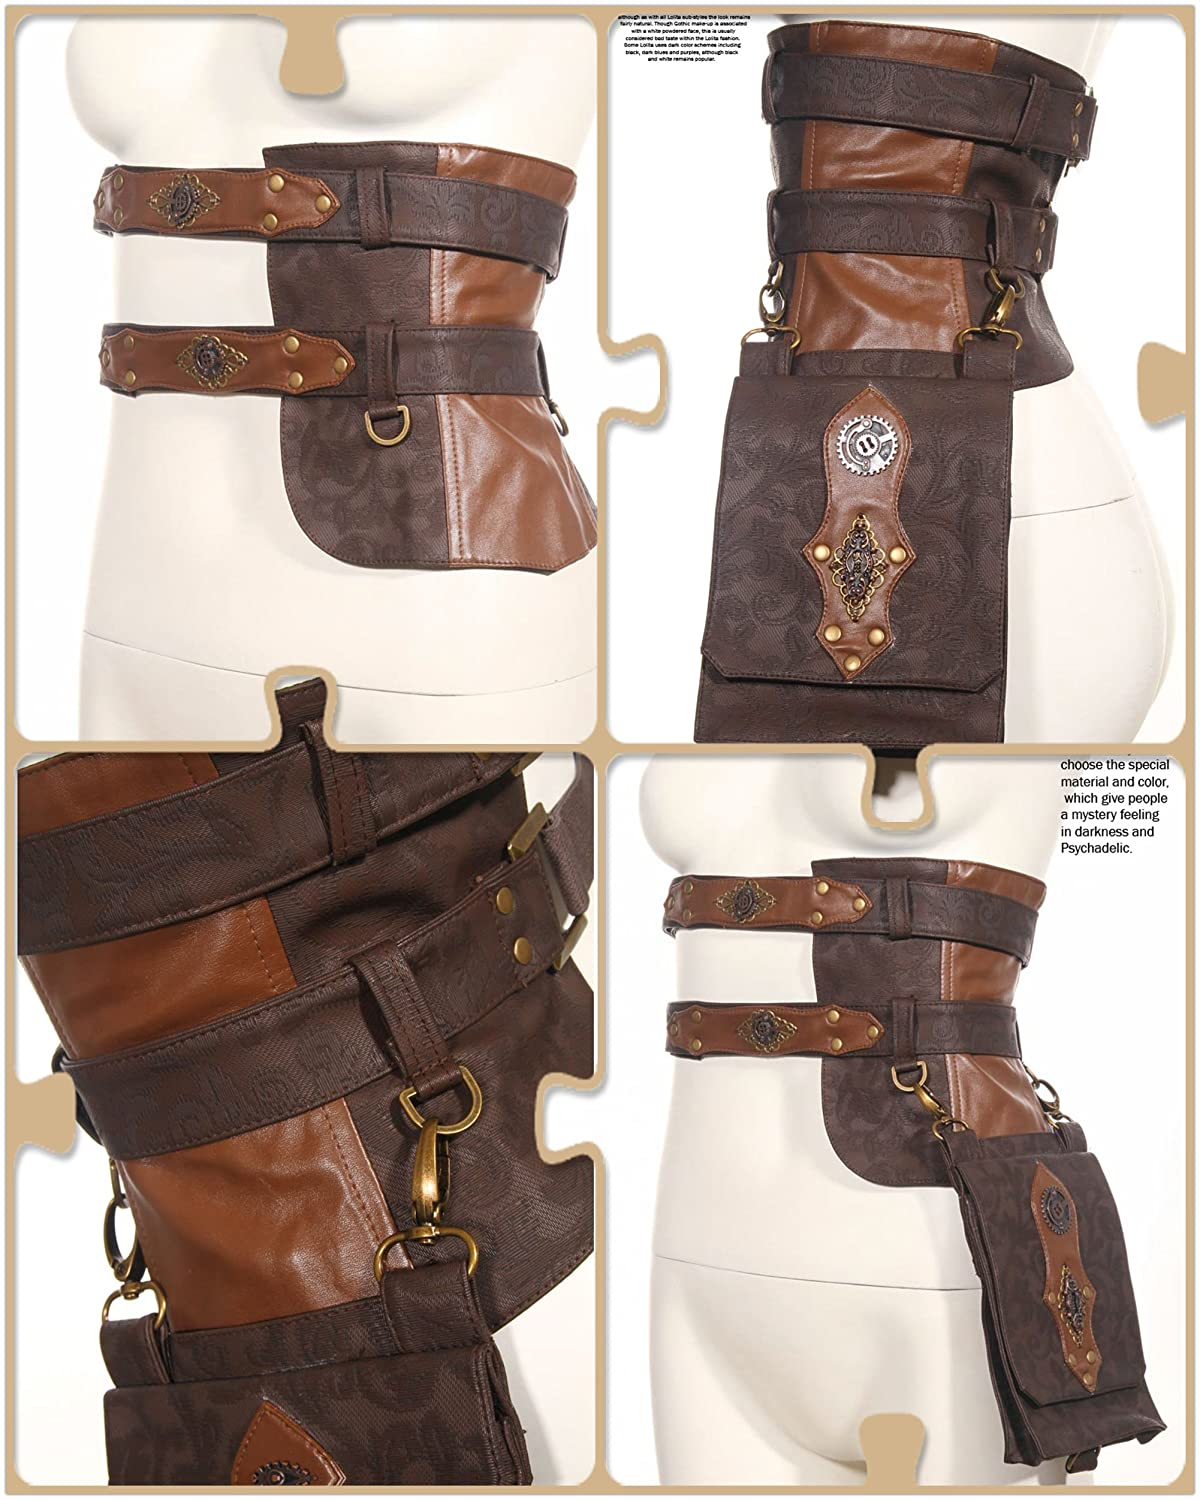 A History of Belts 1920-1960 Steampunk Cosplay Steam Punk Clothing Leather Utility Belt Girls Messenger Bags $52.22 AT vintagedancer.com